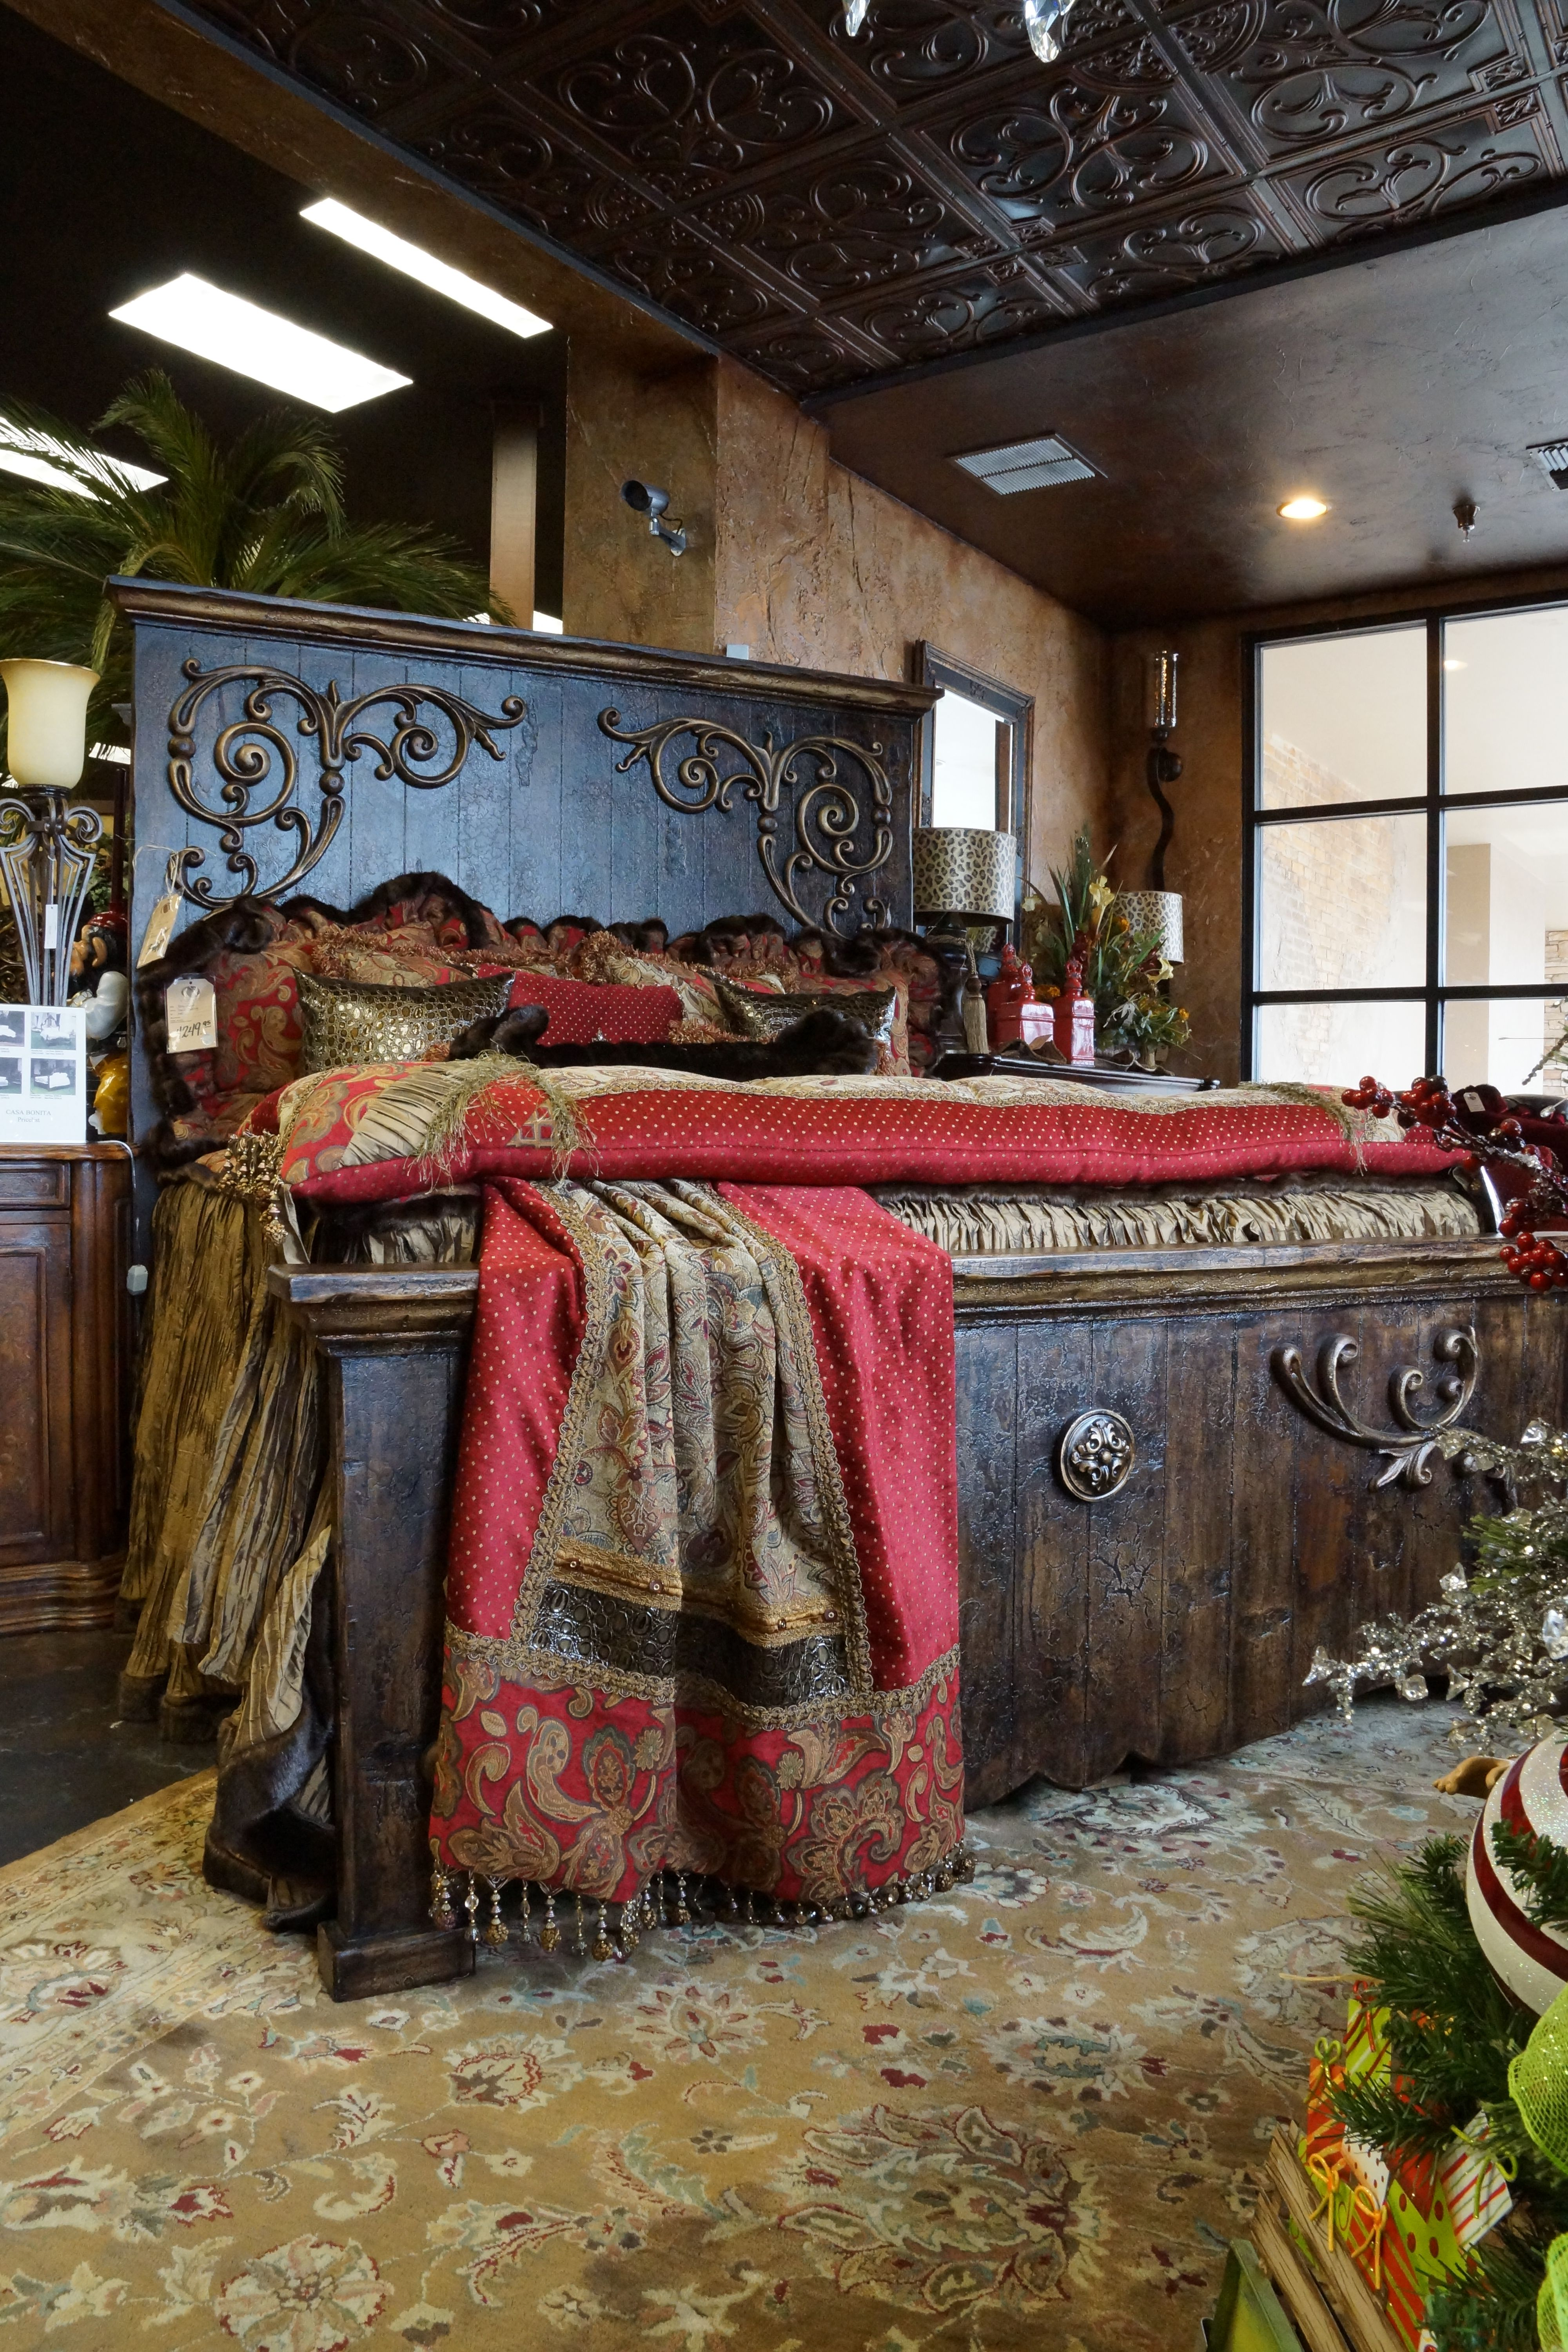 I want to sleep in this beautiful bed rustic elegant bed - Rustic elegant bedroom furniture ...